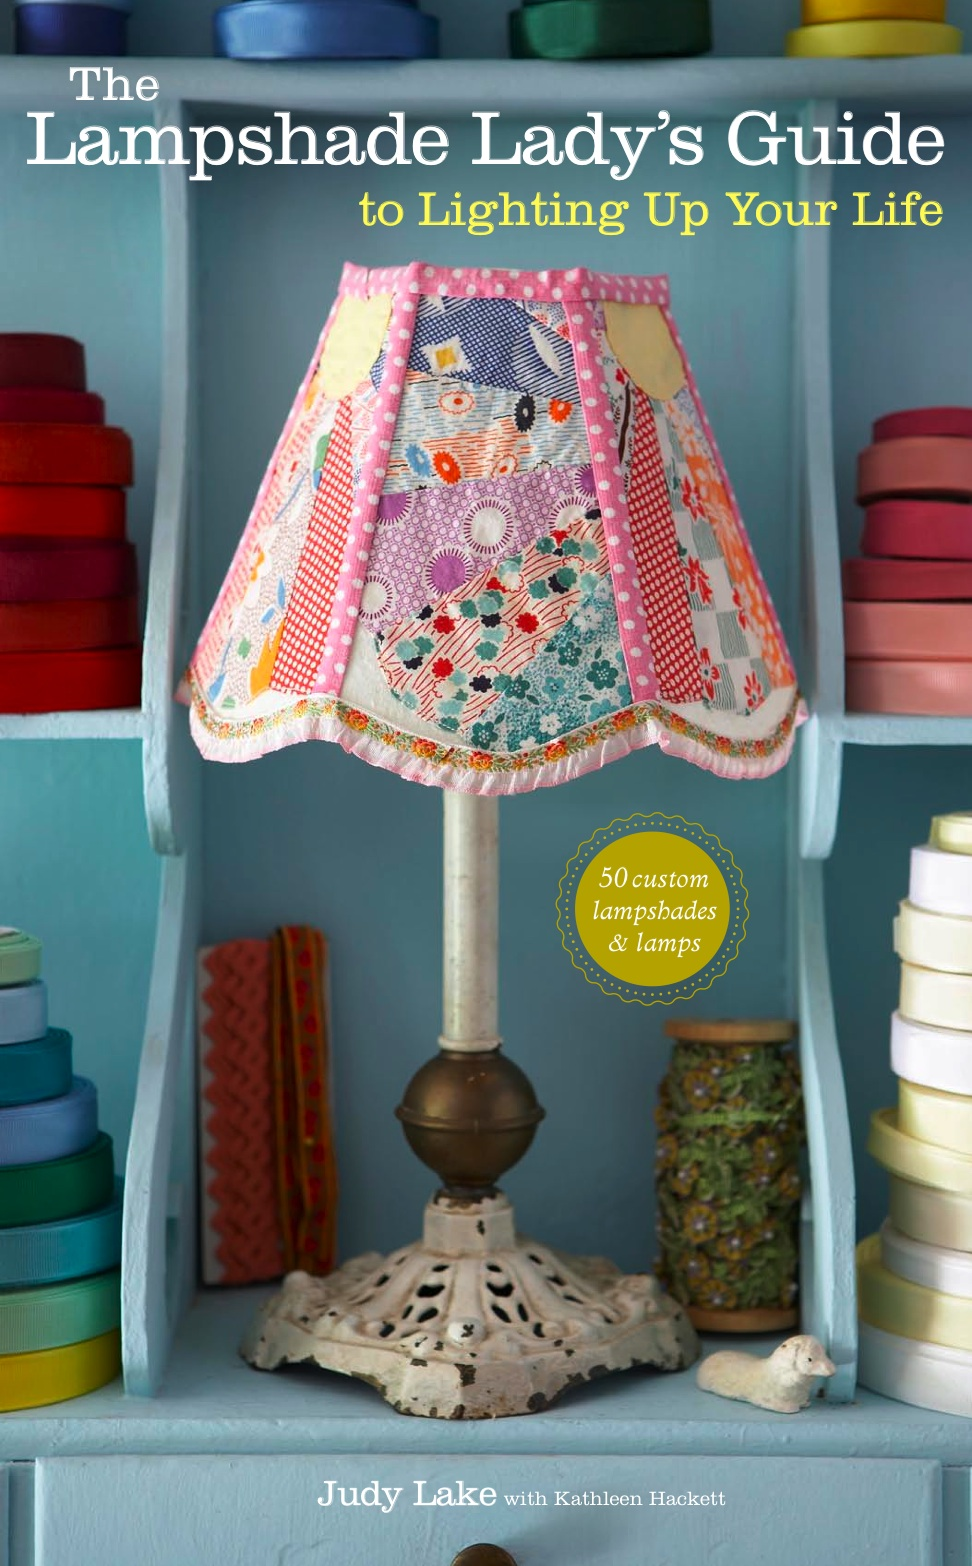 The lampshade lady blog lampshade ladys valentines day book give away i will be giving away an autographed copy of my lampshade lady book just in time for valentines day i want to hear your worst lampshade nightmares how aloadofball